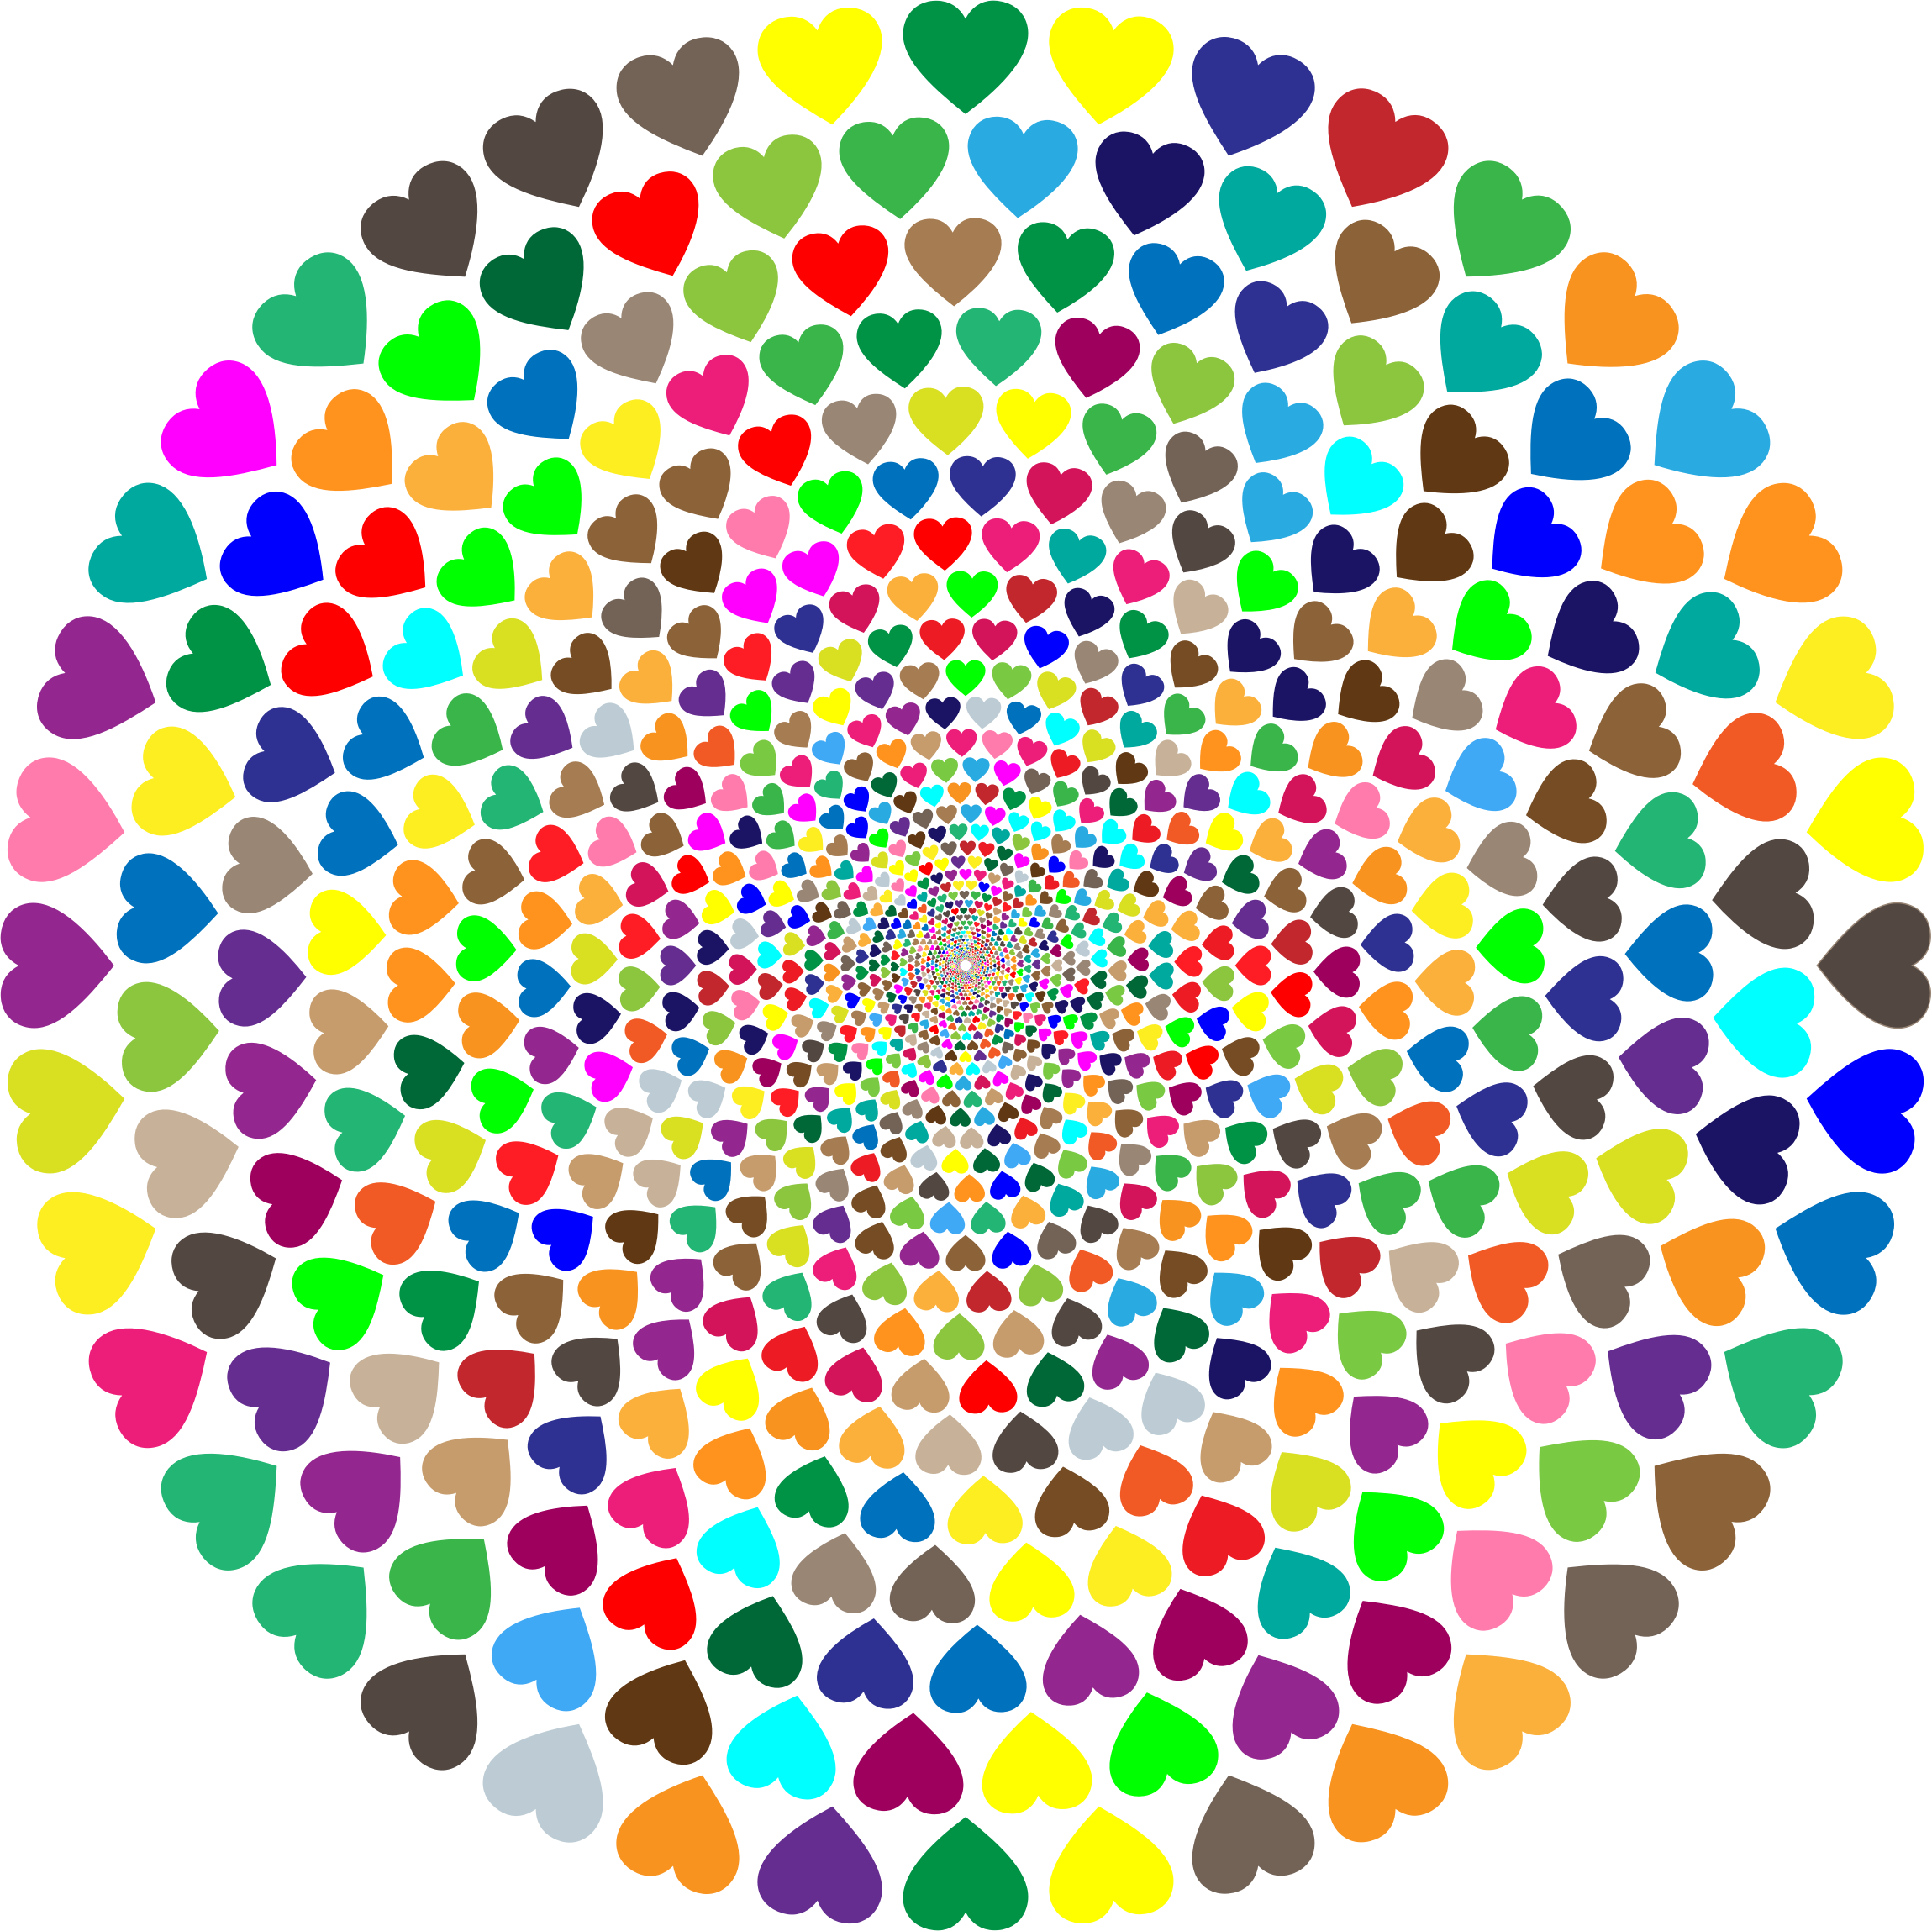 Colorful Hearts Vortex 2 by GDJ